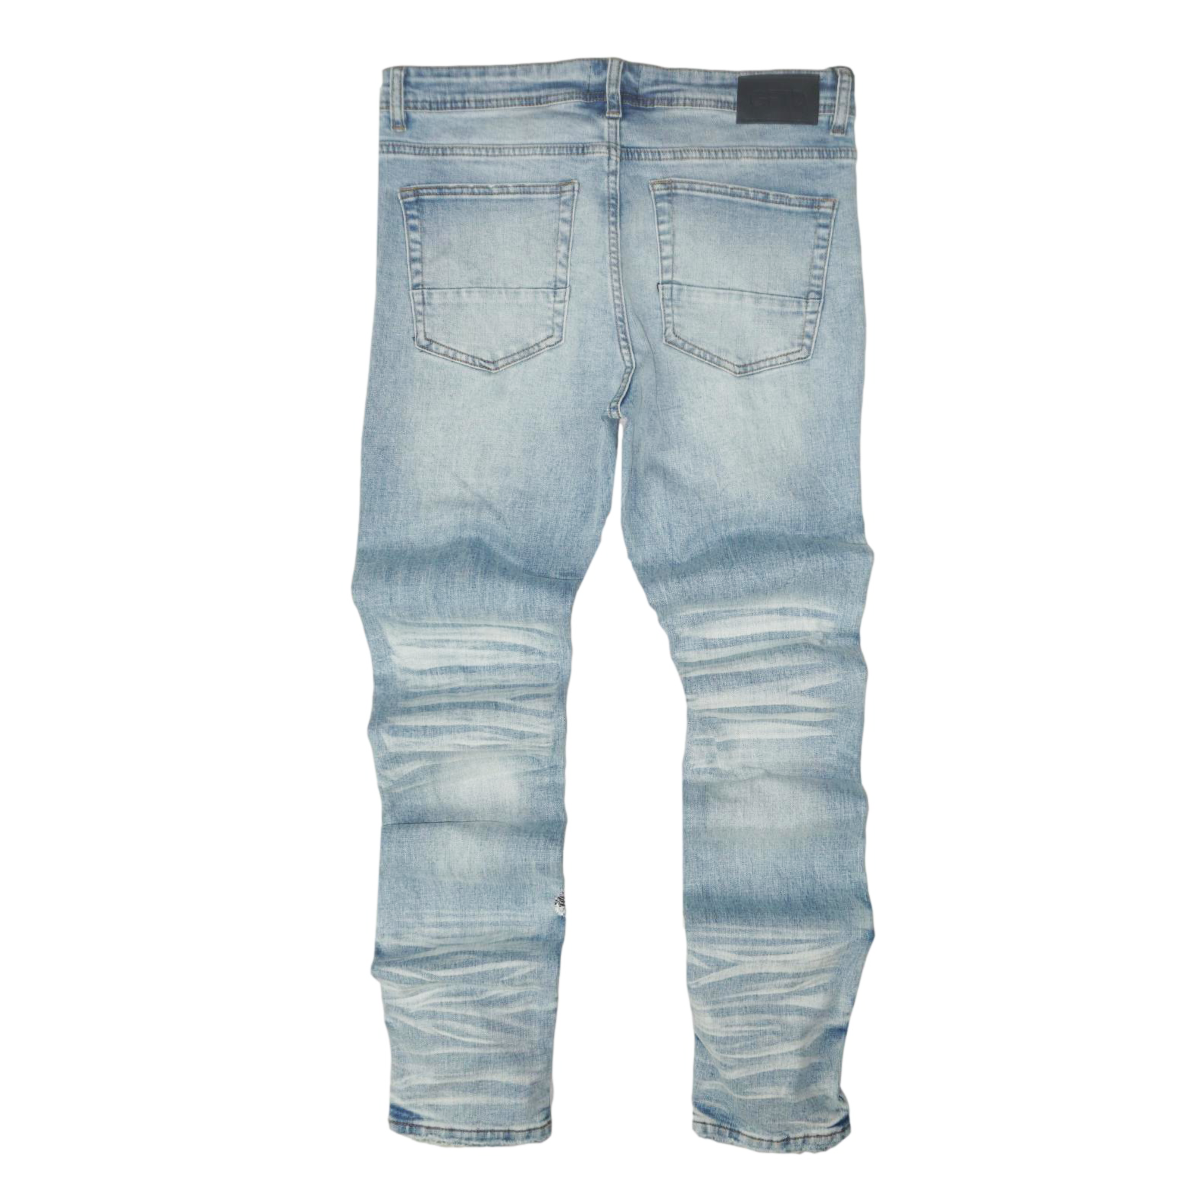 Alan Patch Distressed Denim (Lt. Blue) /C4